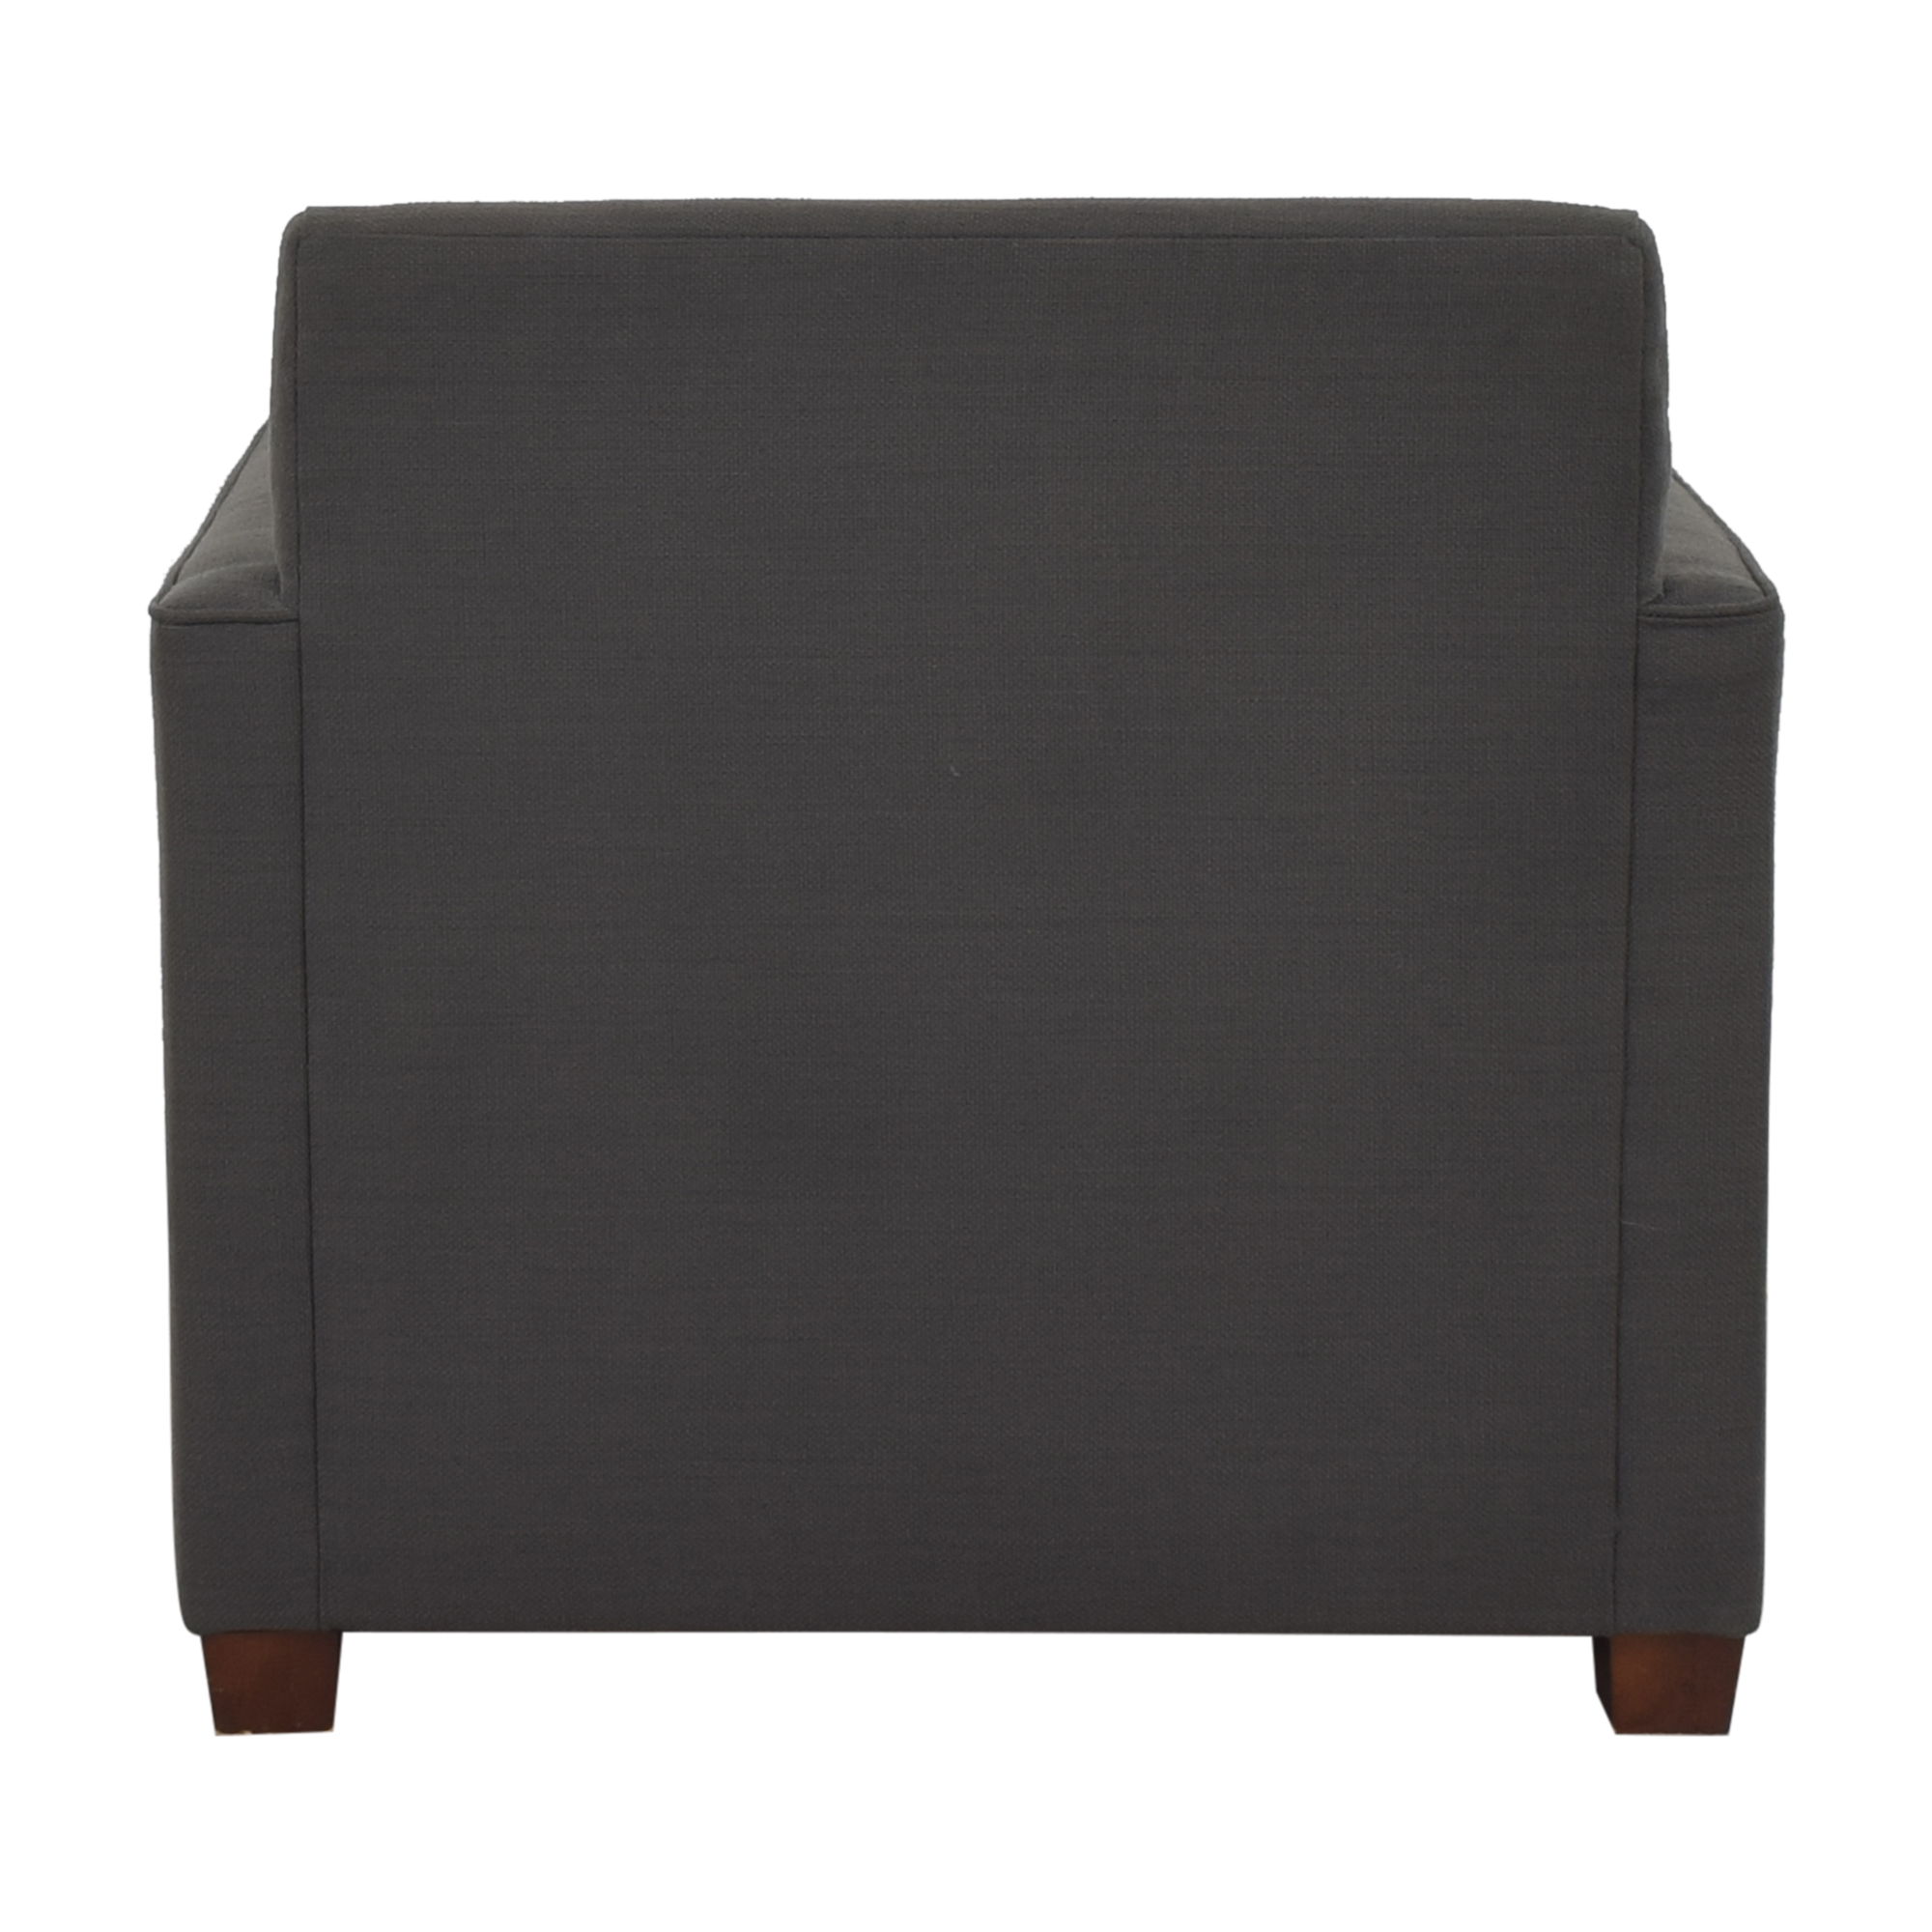 West Elm Henry Chair and Ottoman sale